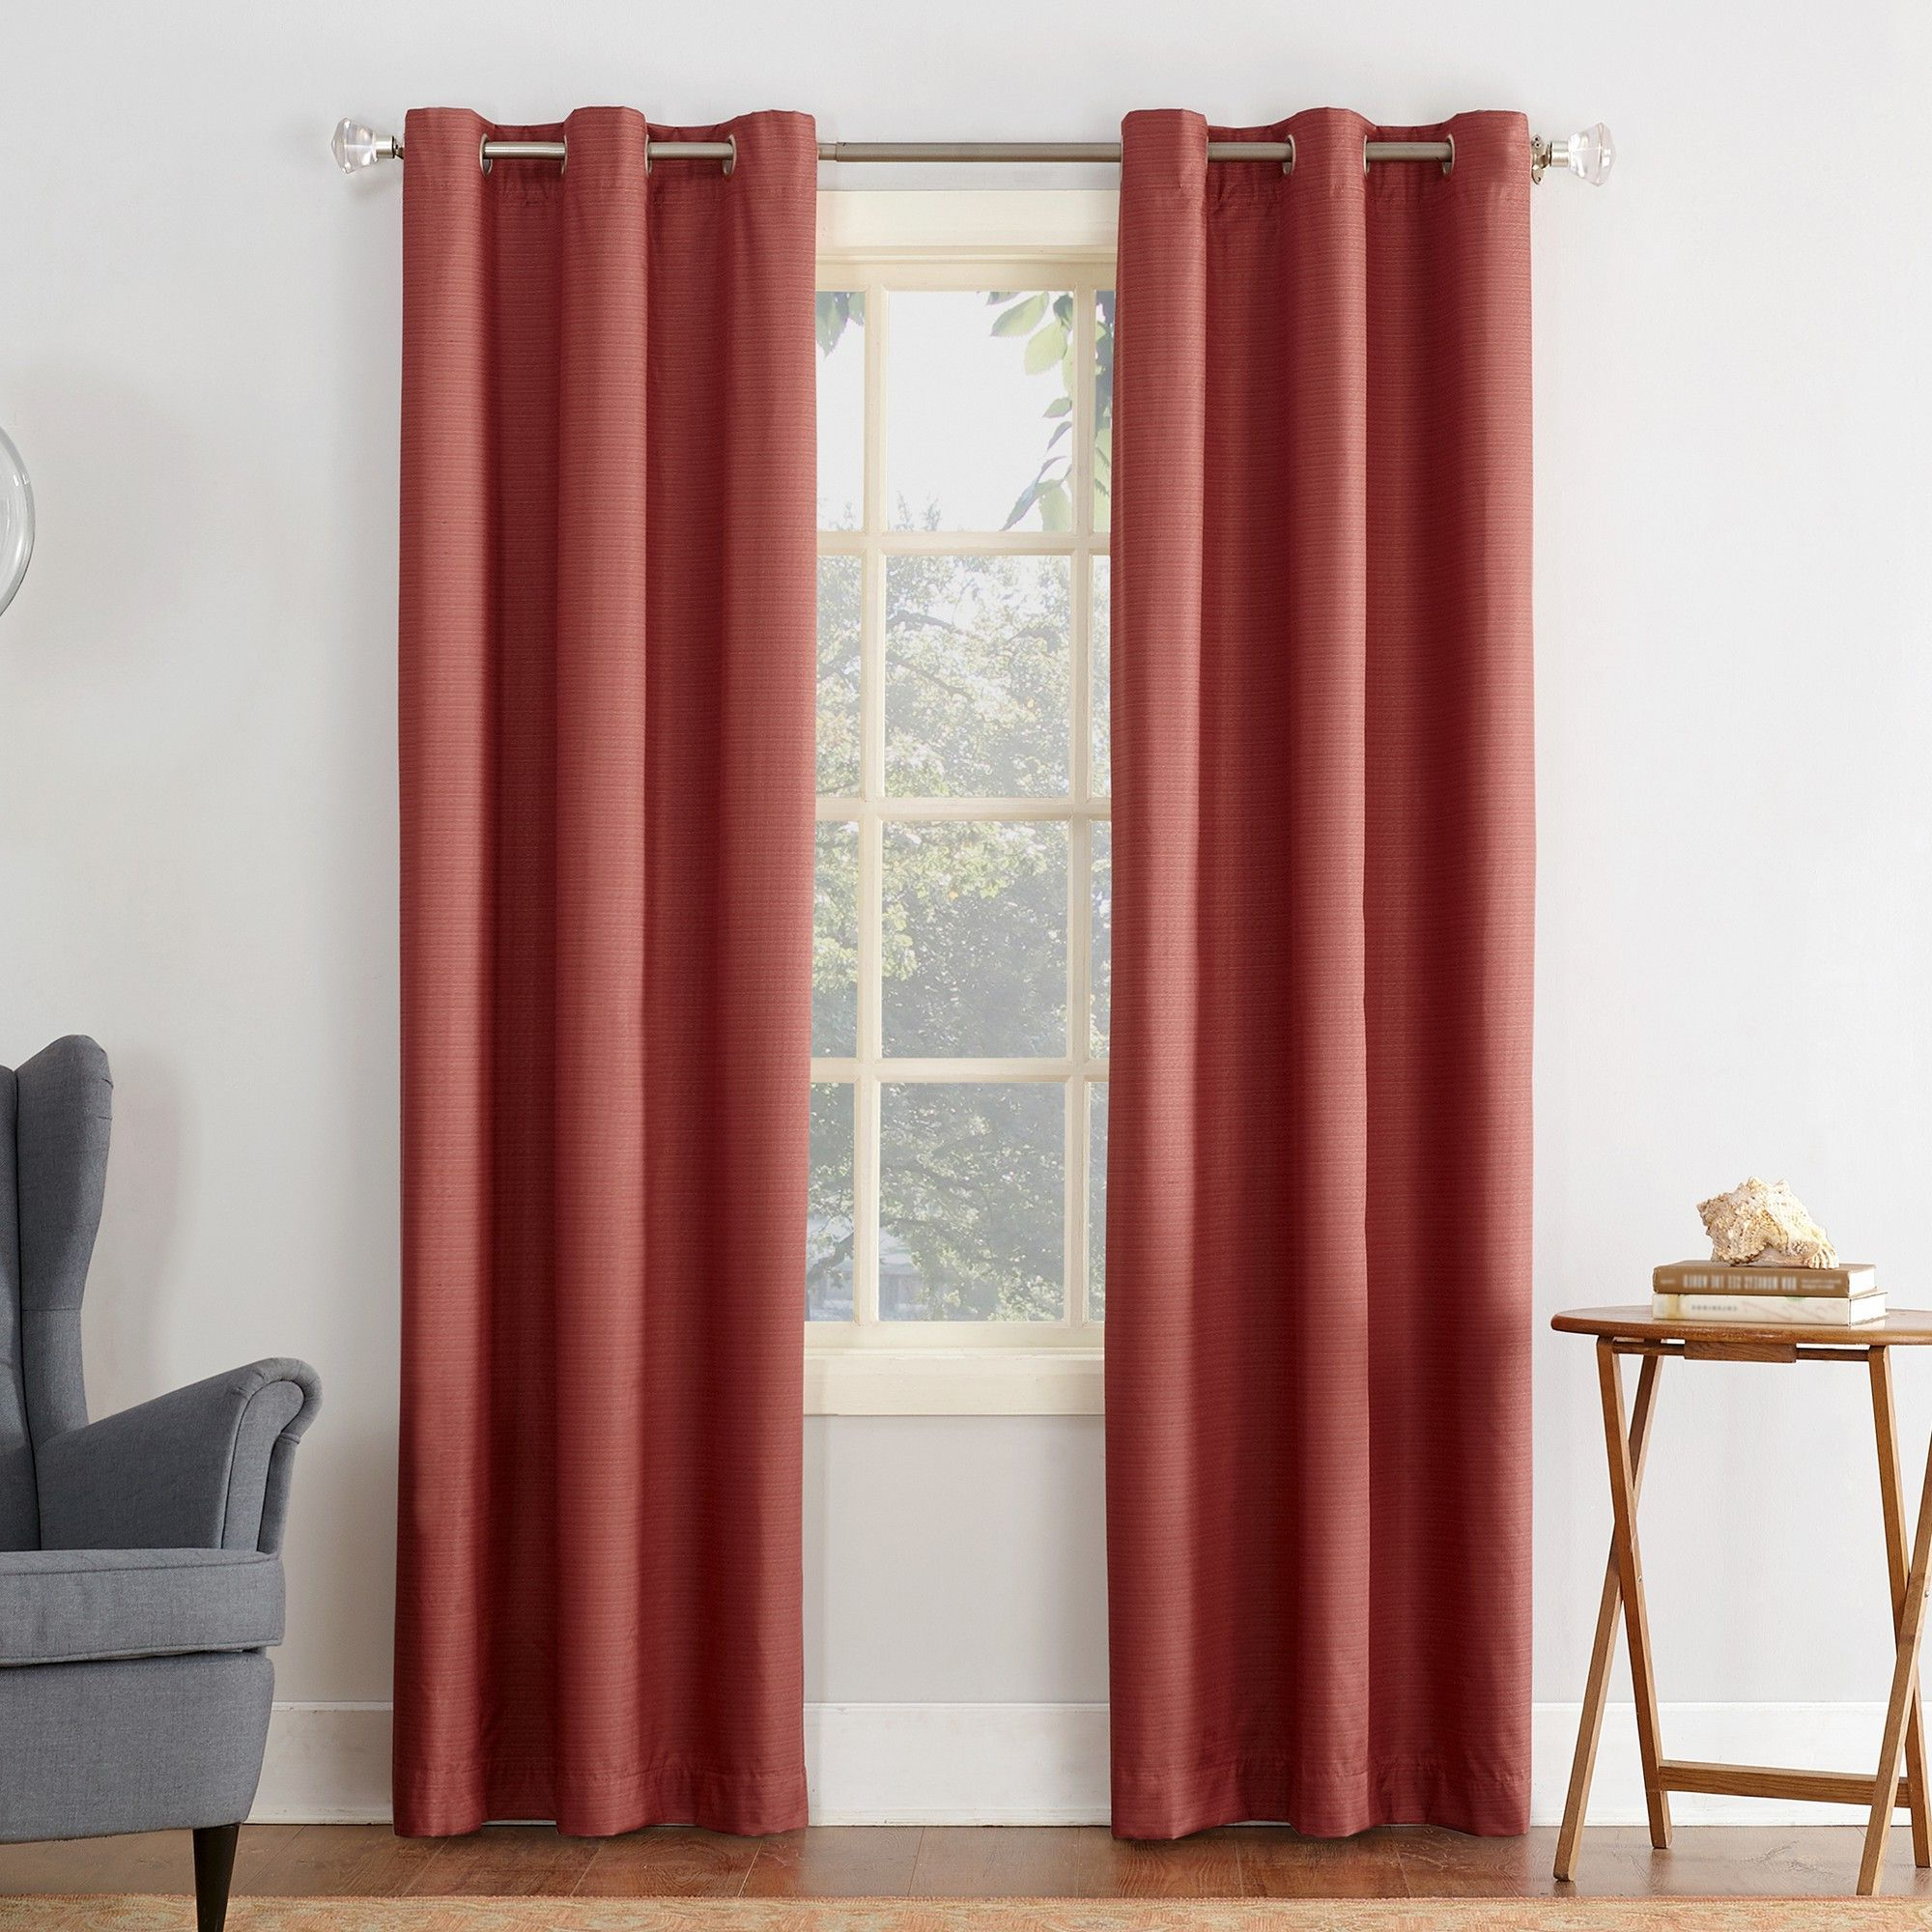 Cooper Textured Thermal Insulated Grommet Curtain Panels For Fashionable Cooper Textured Thermal Insulated Grommet Curtain Panel Gray (View 6 of 20)